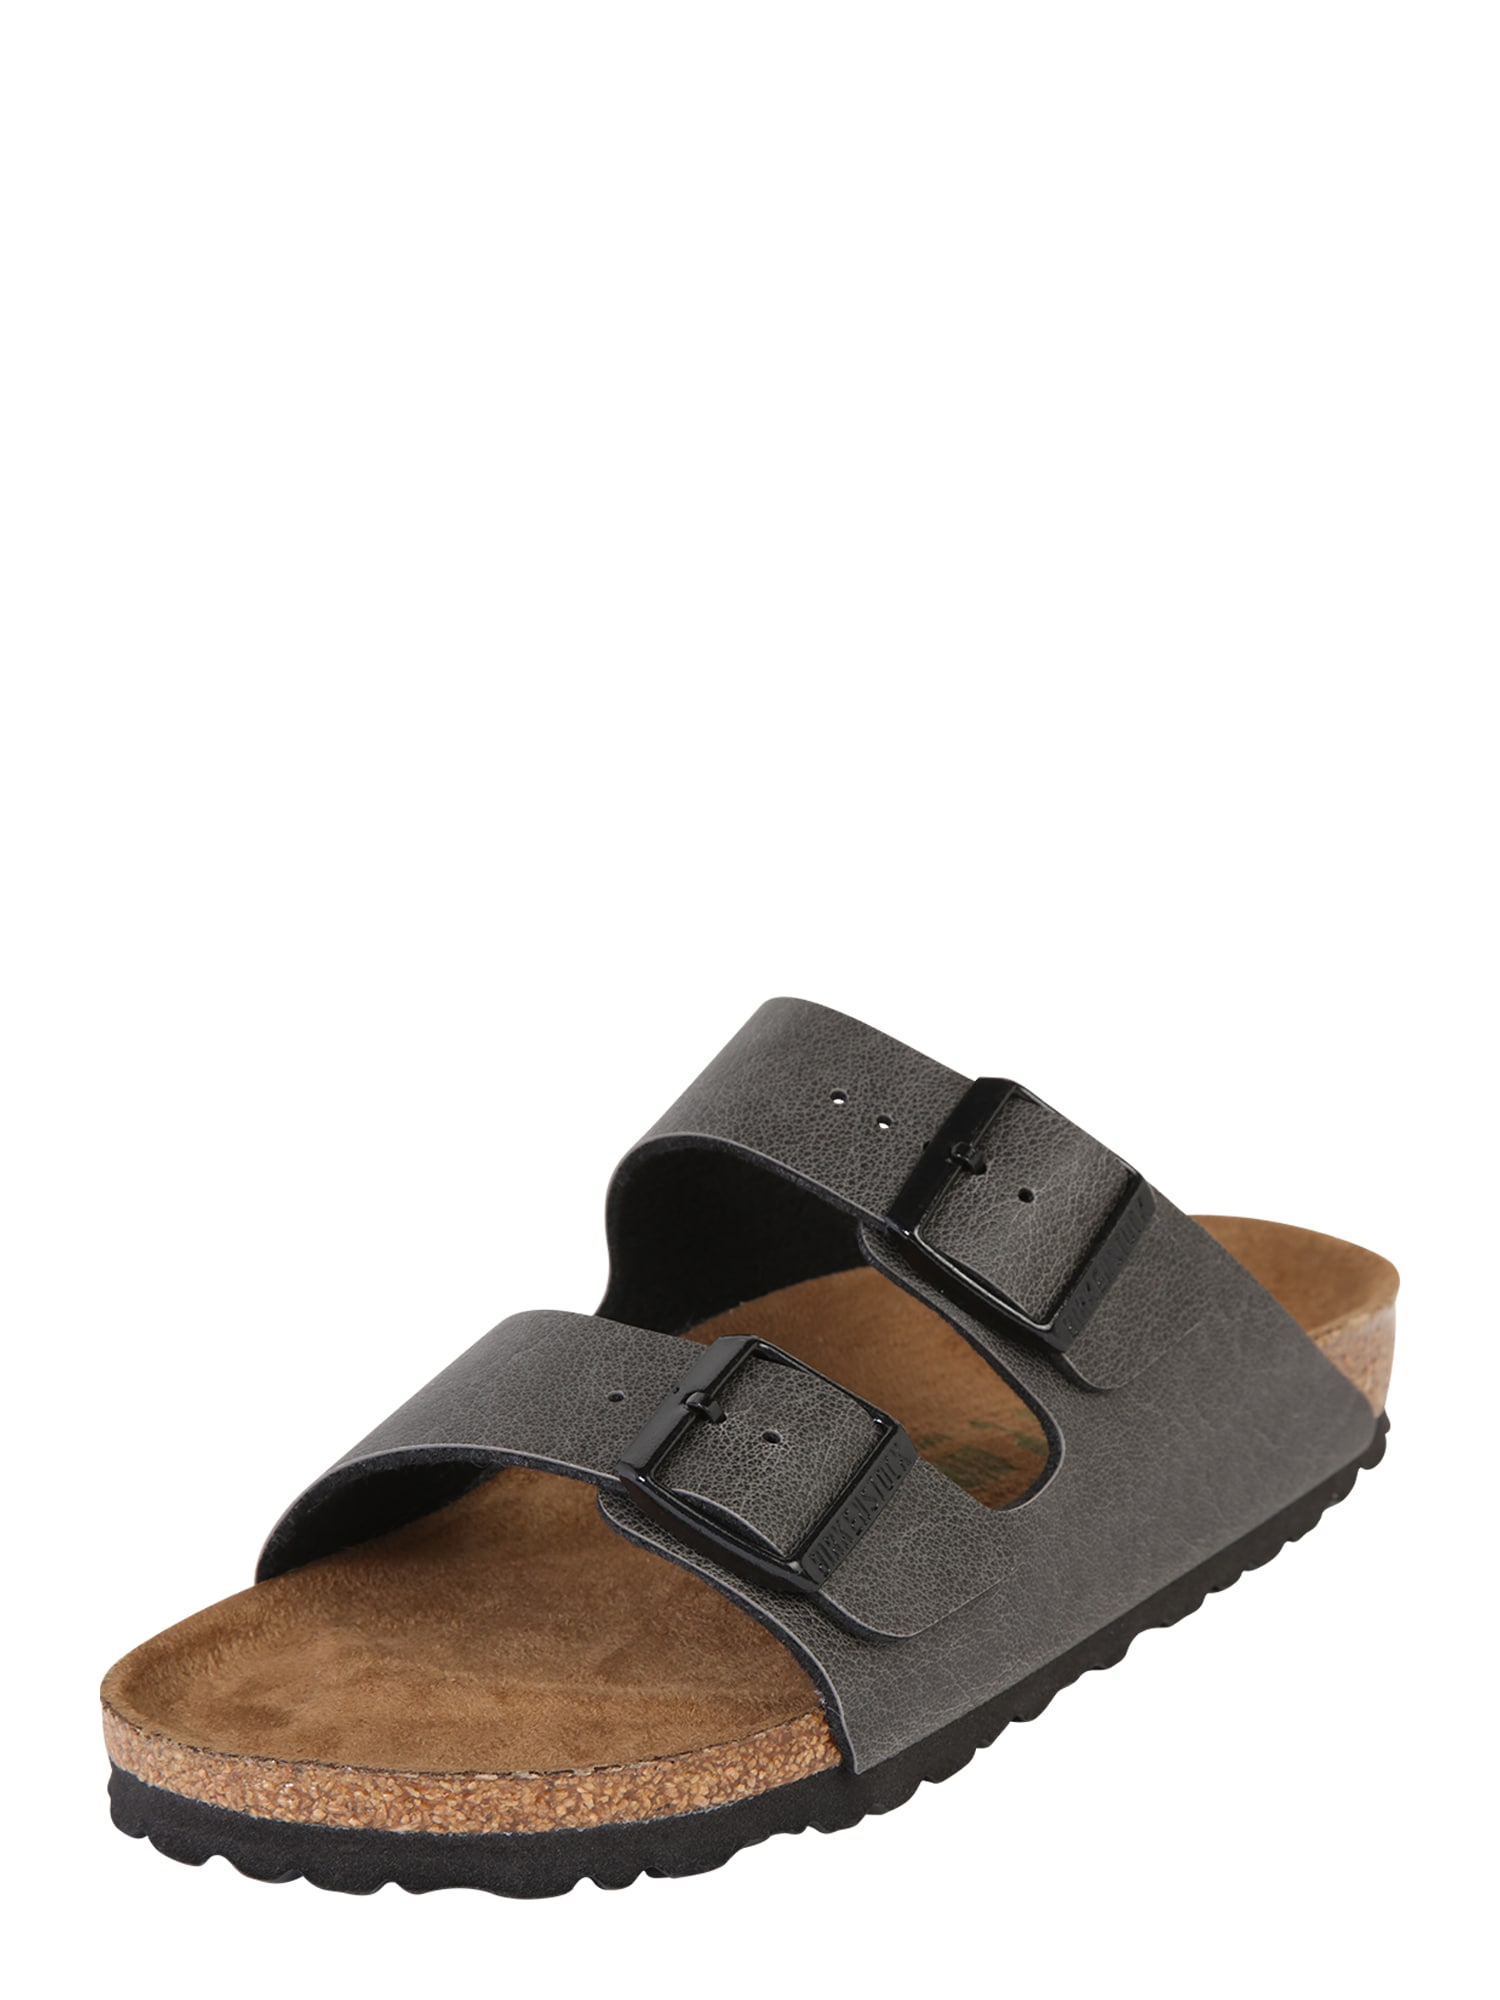 Pantofle Arizona Pull Up Vegan antracitová BIRKENSTOCK